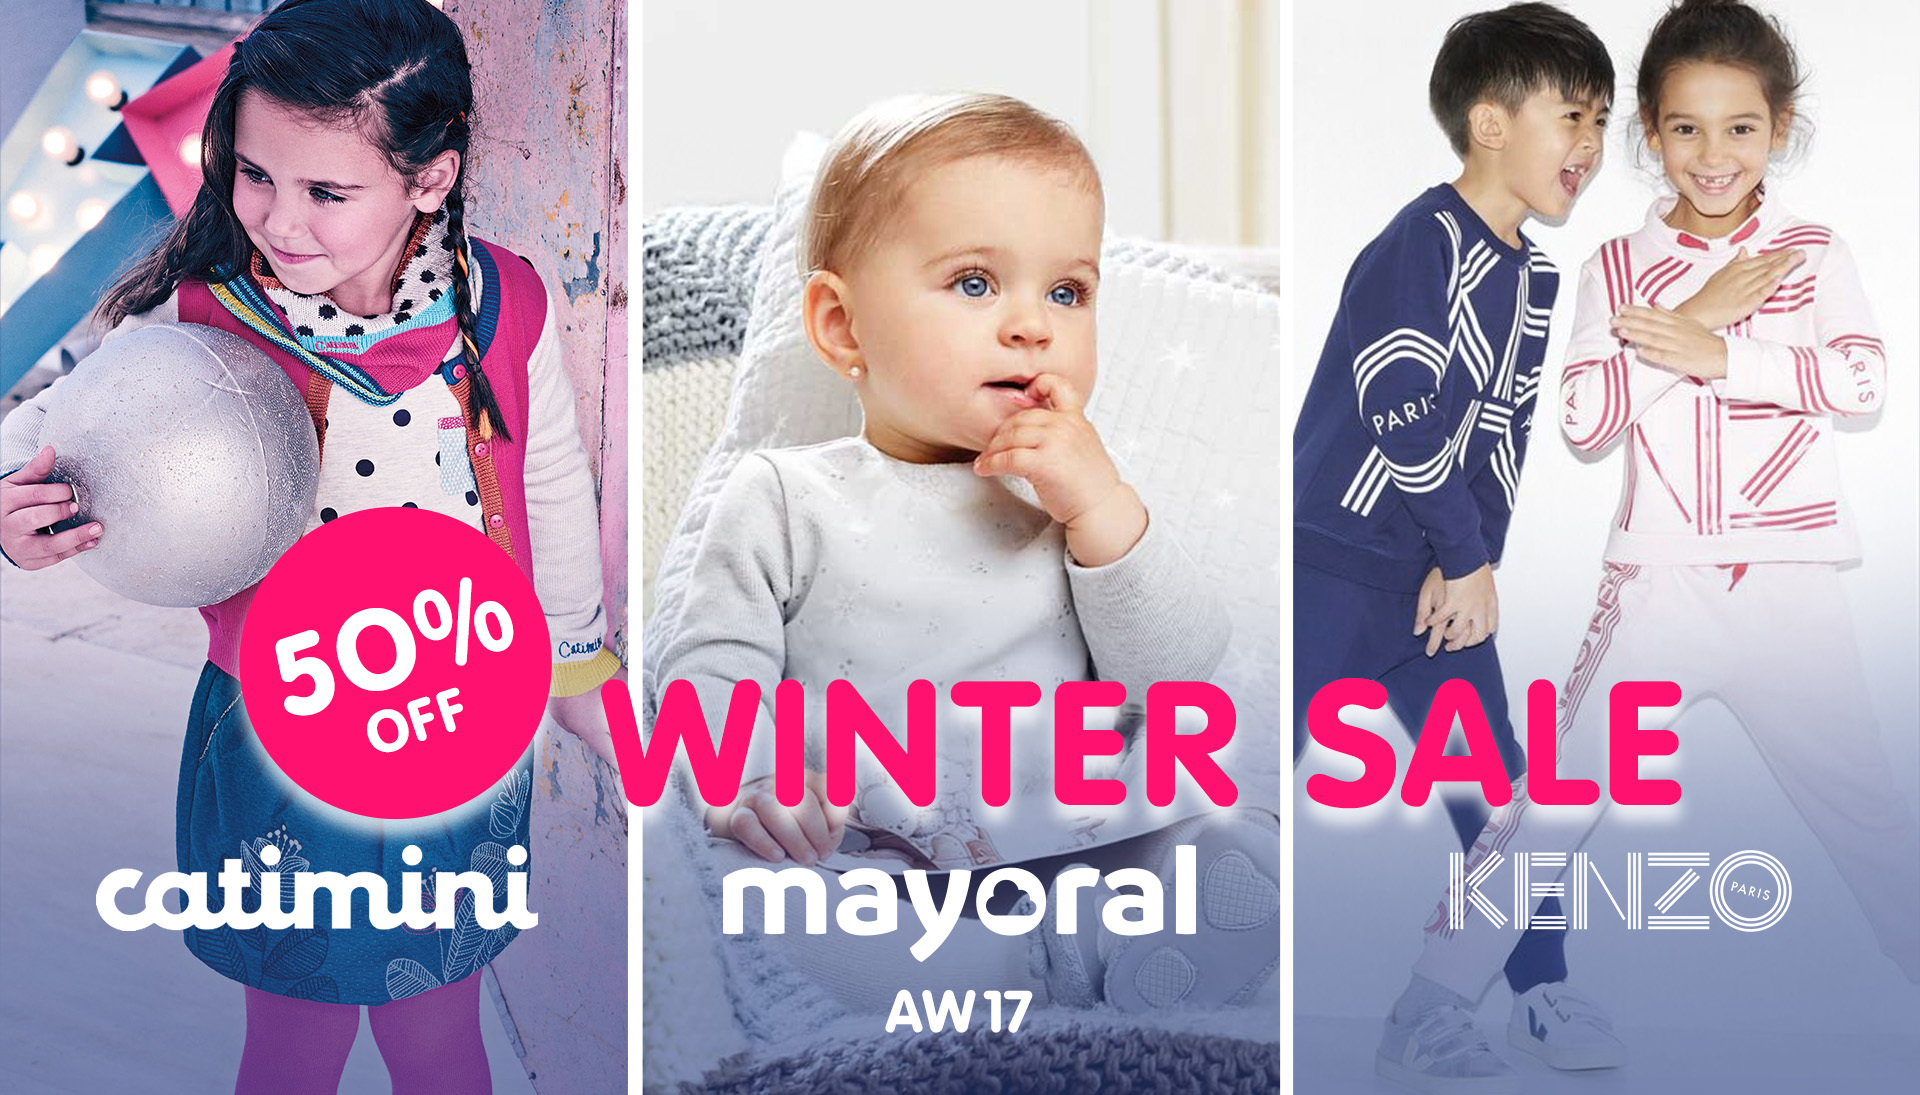 Jack and Jill_Banner_Winter Sale 2018